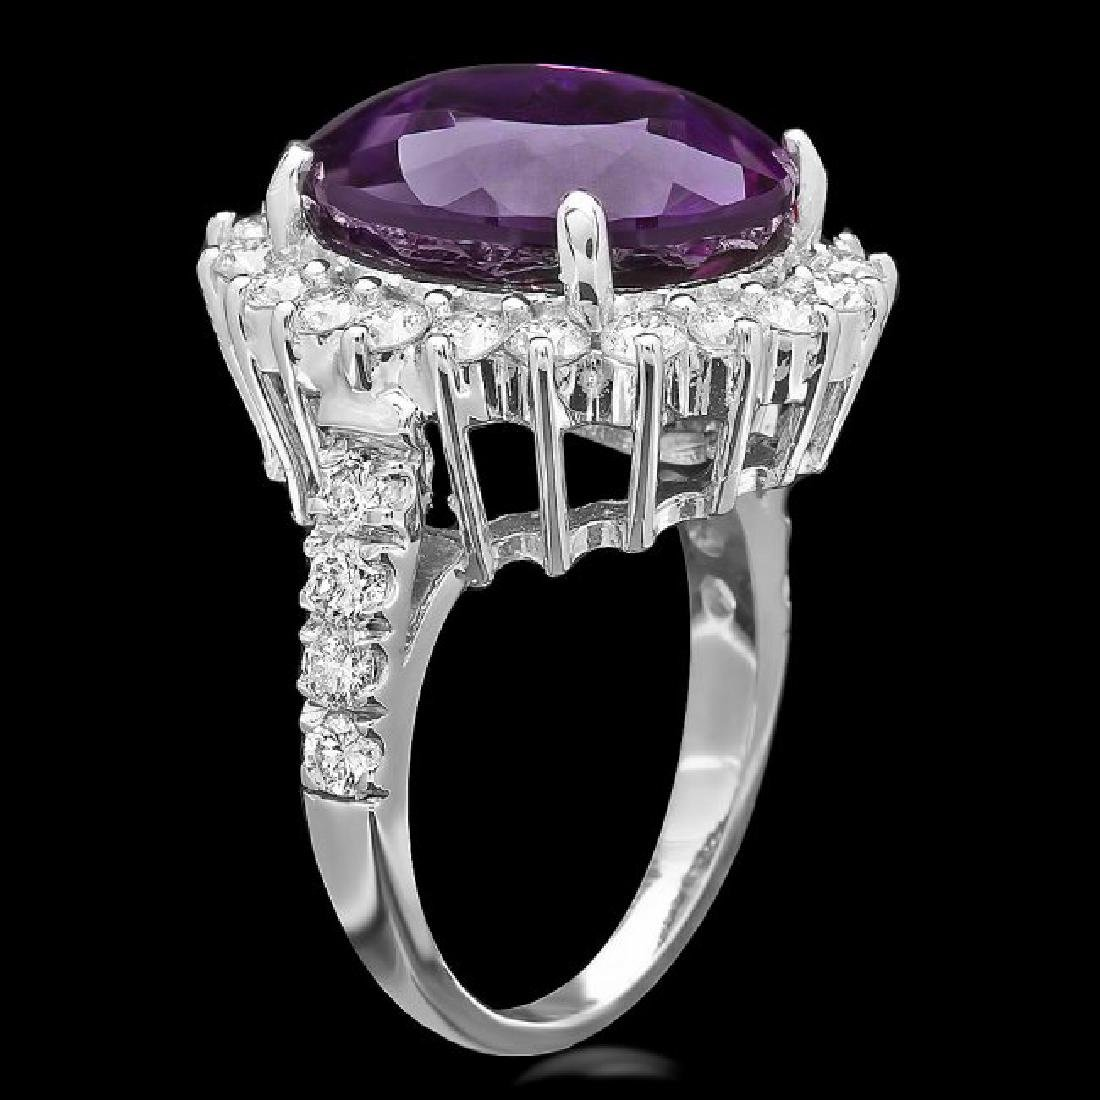 14k Gold 9.50ct Amethyst 1.60ct Diamond Ring - 2